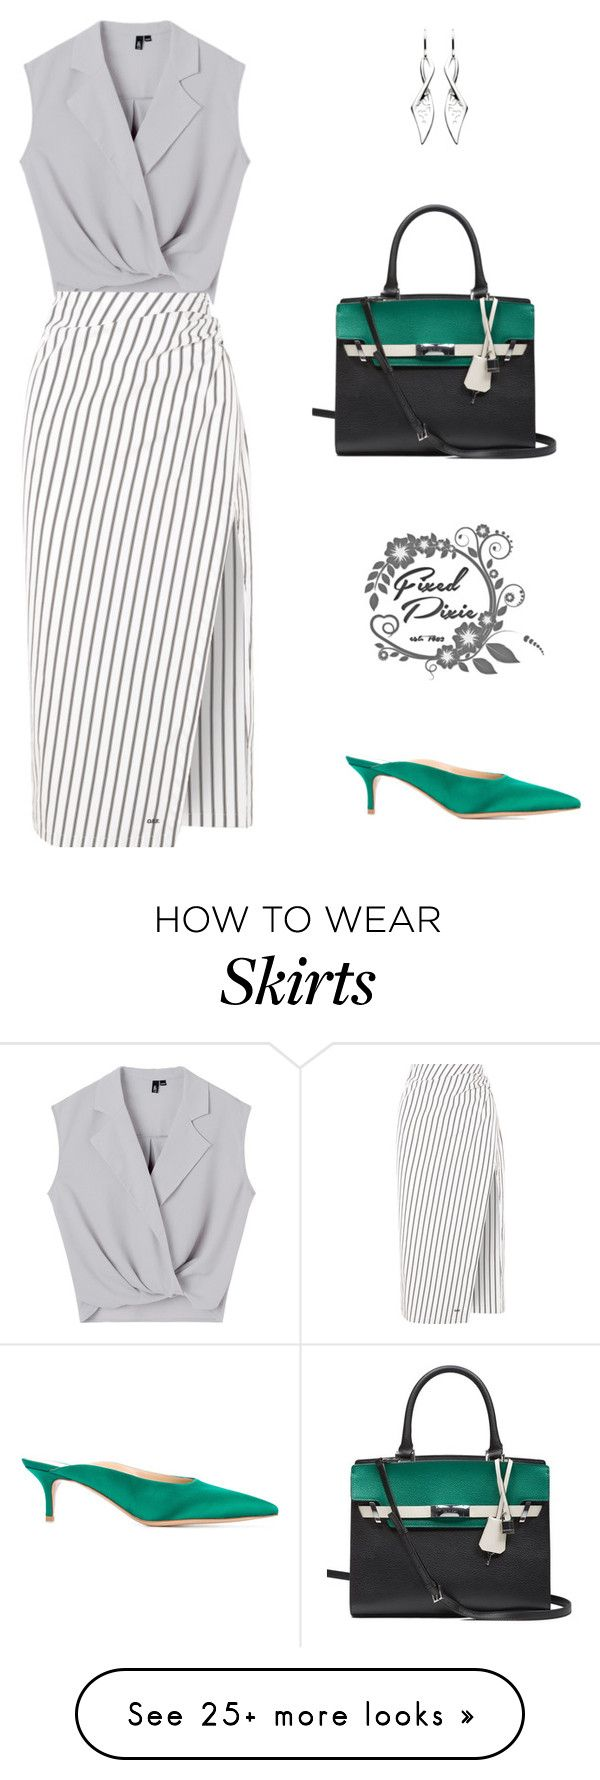 """Untitled #38"" by fixedpixie on Polyvore featuring Gianvito Rossi, Kit Heath, Calvin Klein, Off-White, GREEN, grey, feminine and pencilskirt"